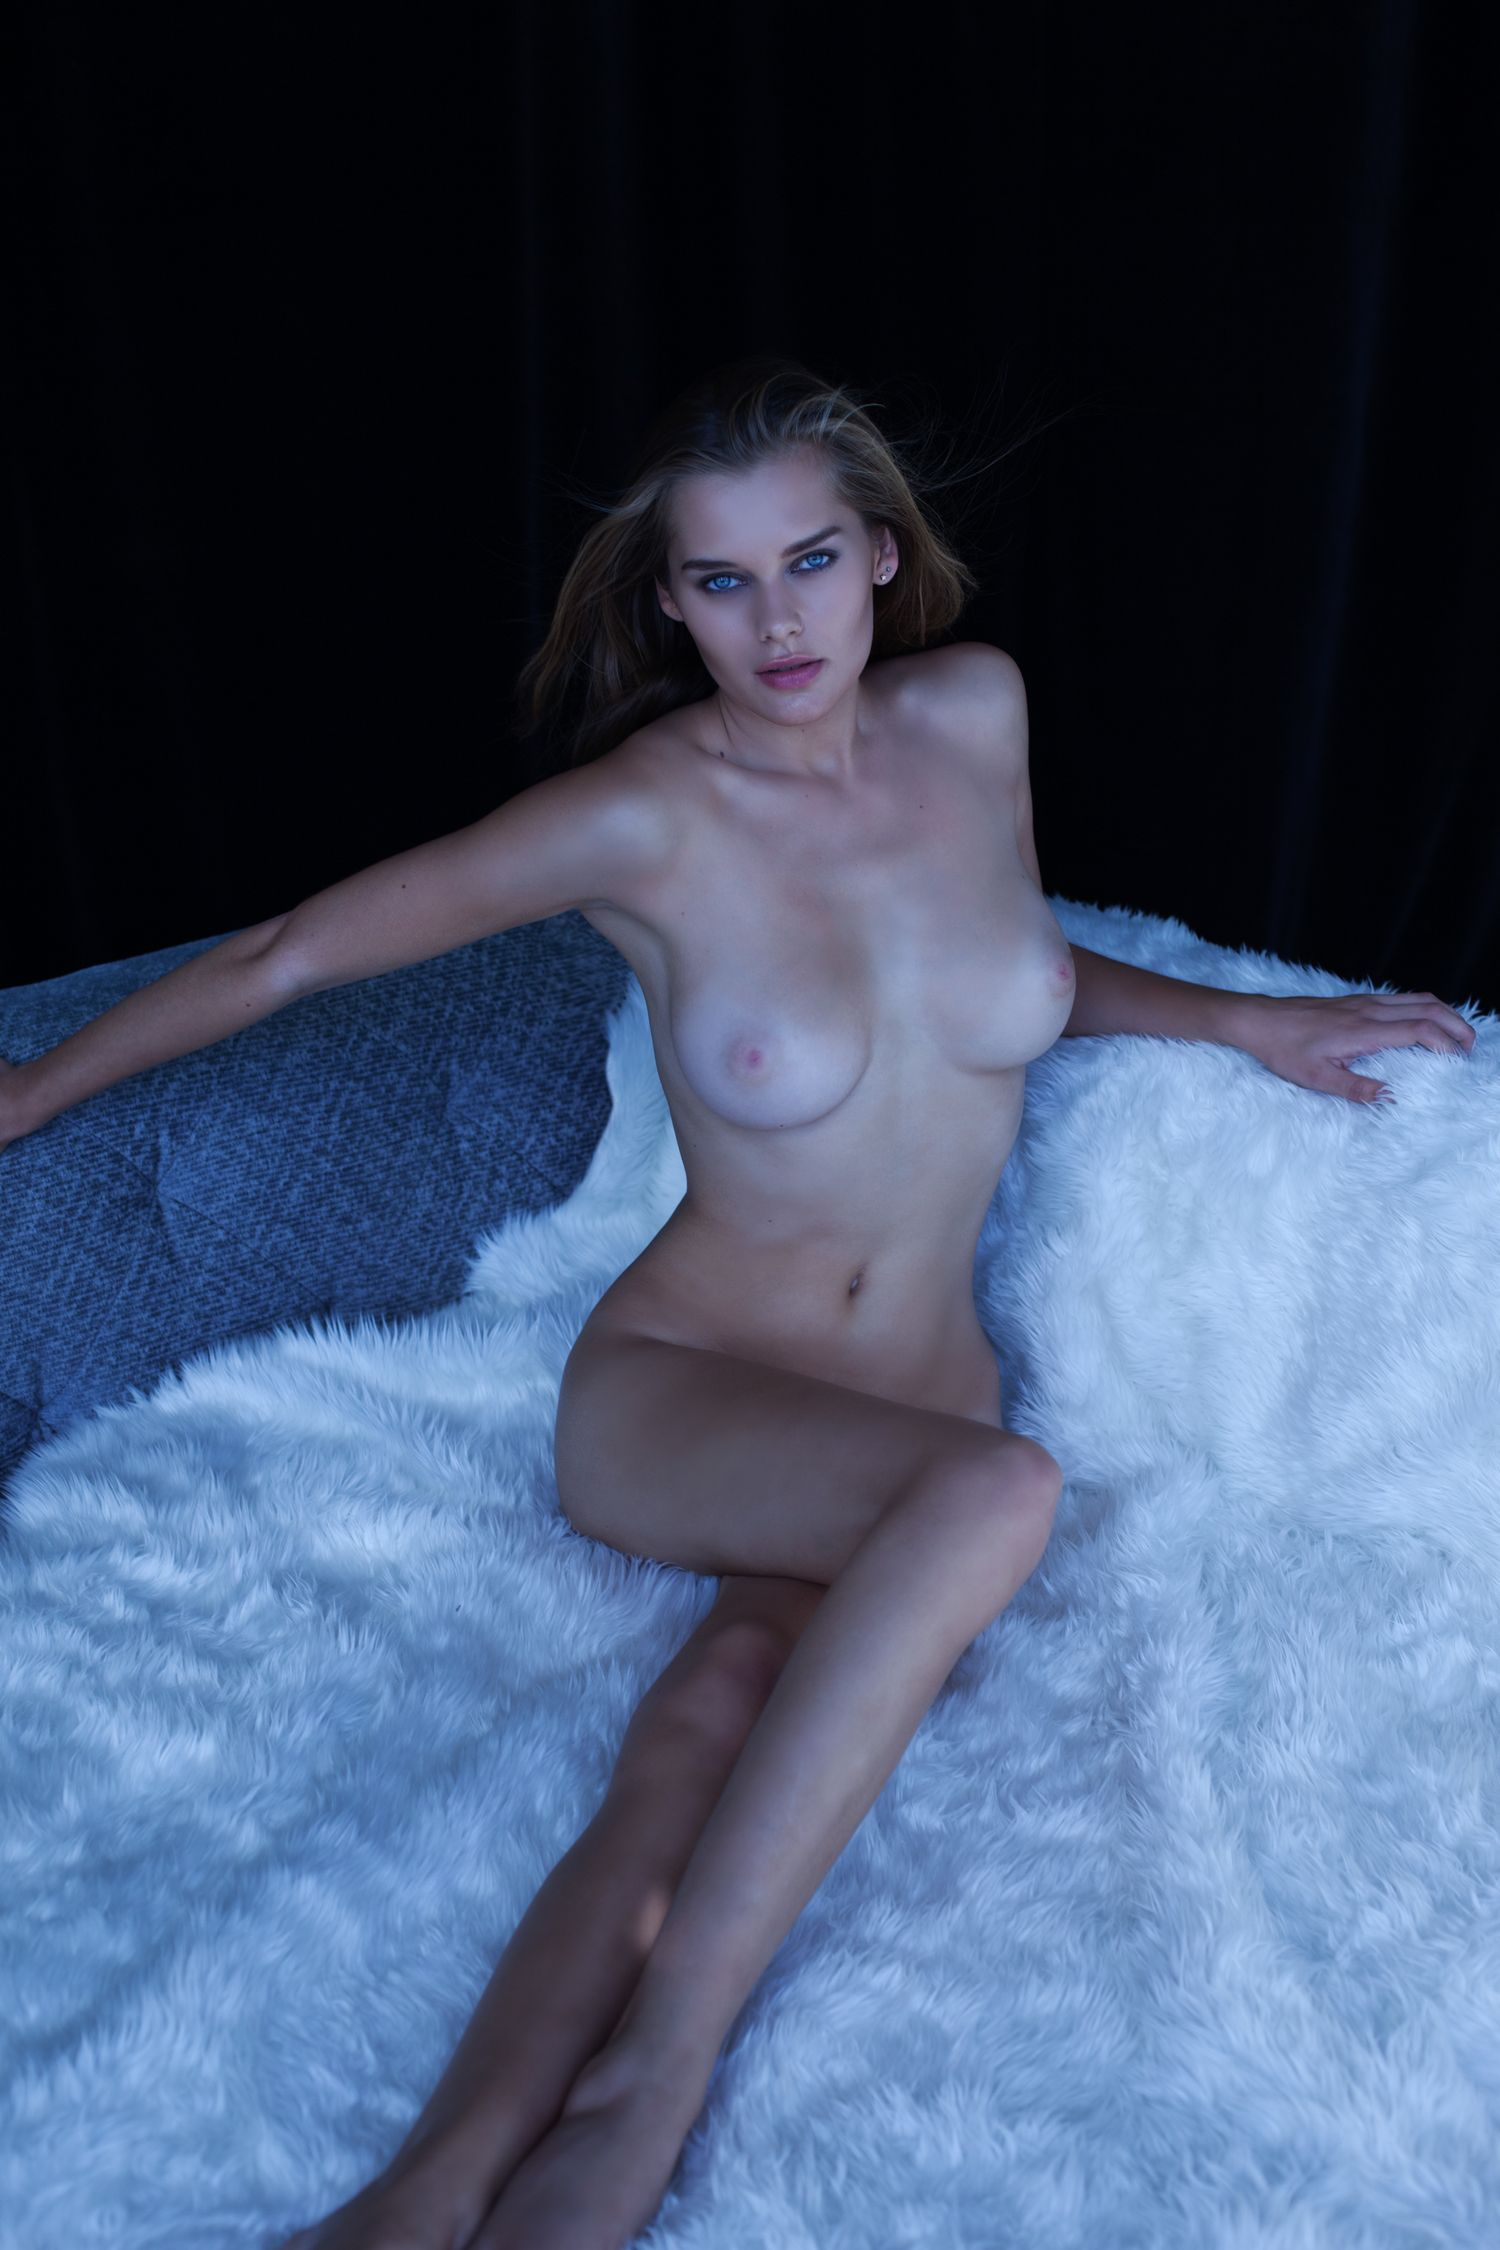 Forum on this topic: Carine tyldesley sexy, solveig-mork-hansen-topless-7-photos/